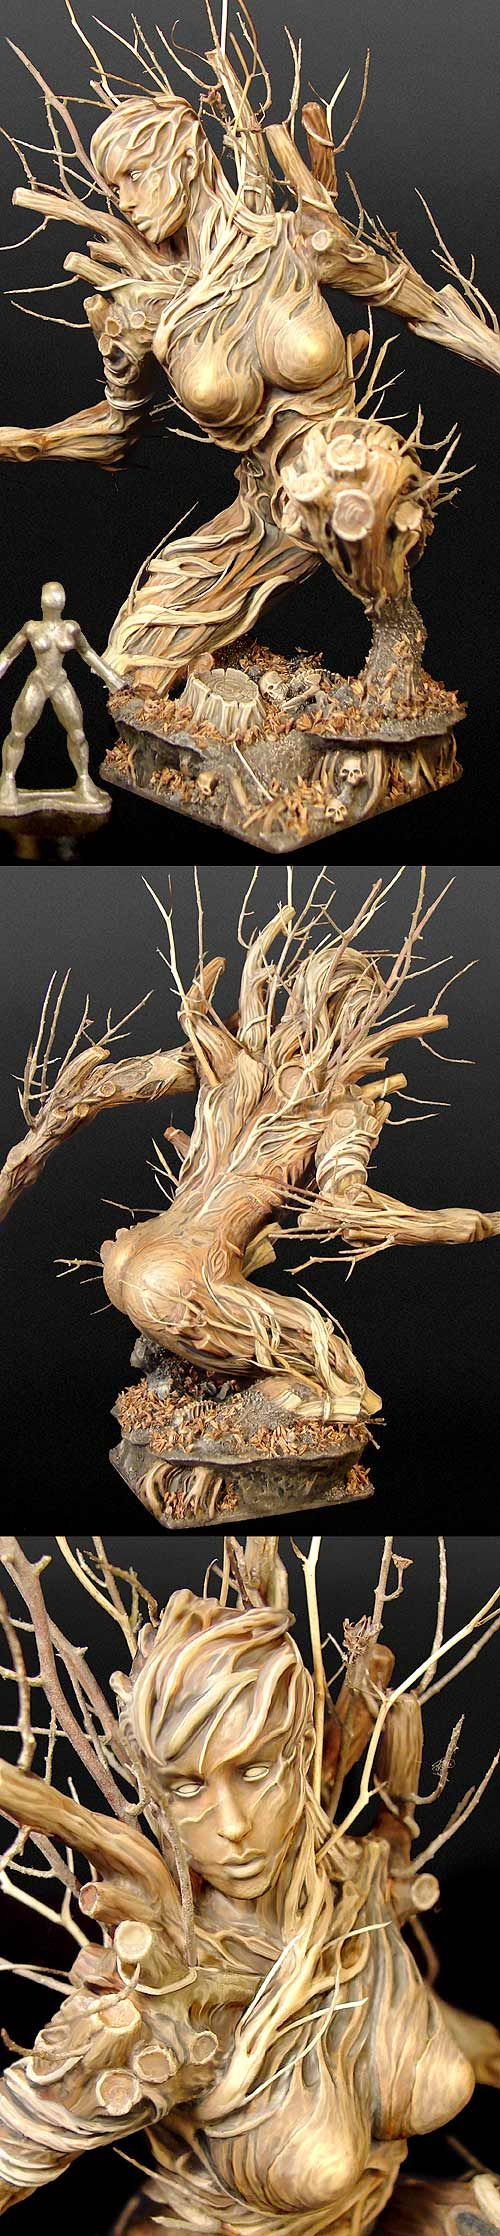 dryad : Exquisite ,Sensual , Incredibly Detailed want to Touch Art !